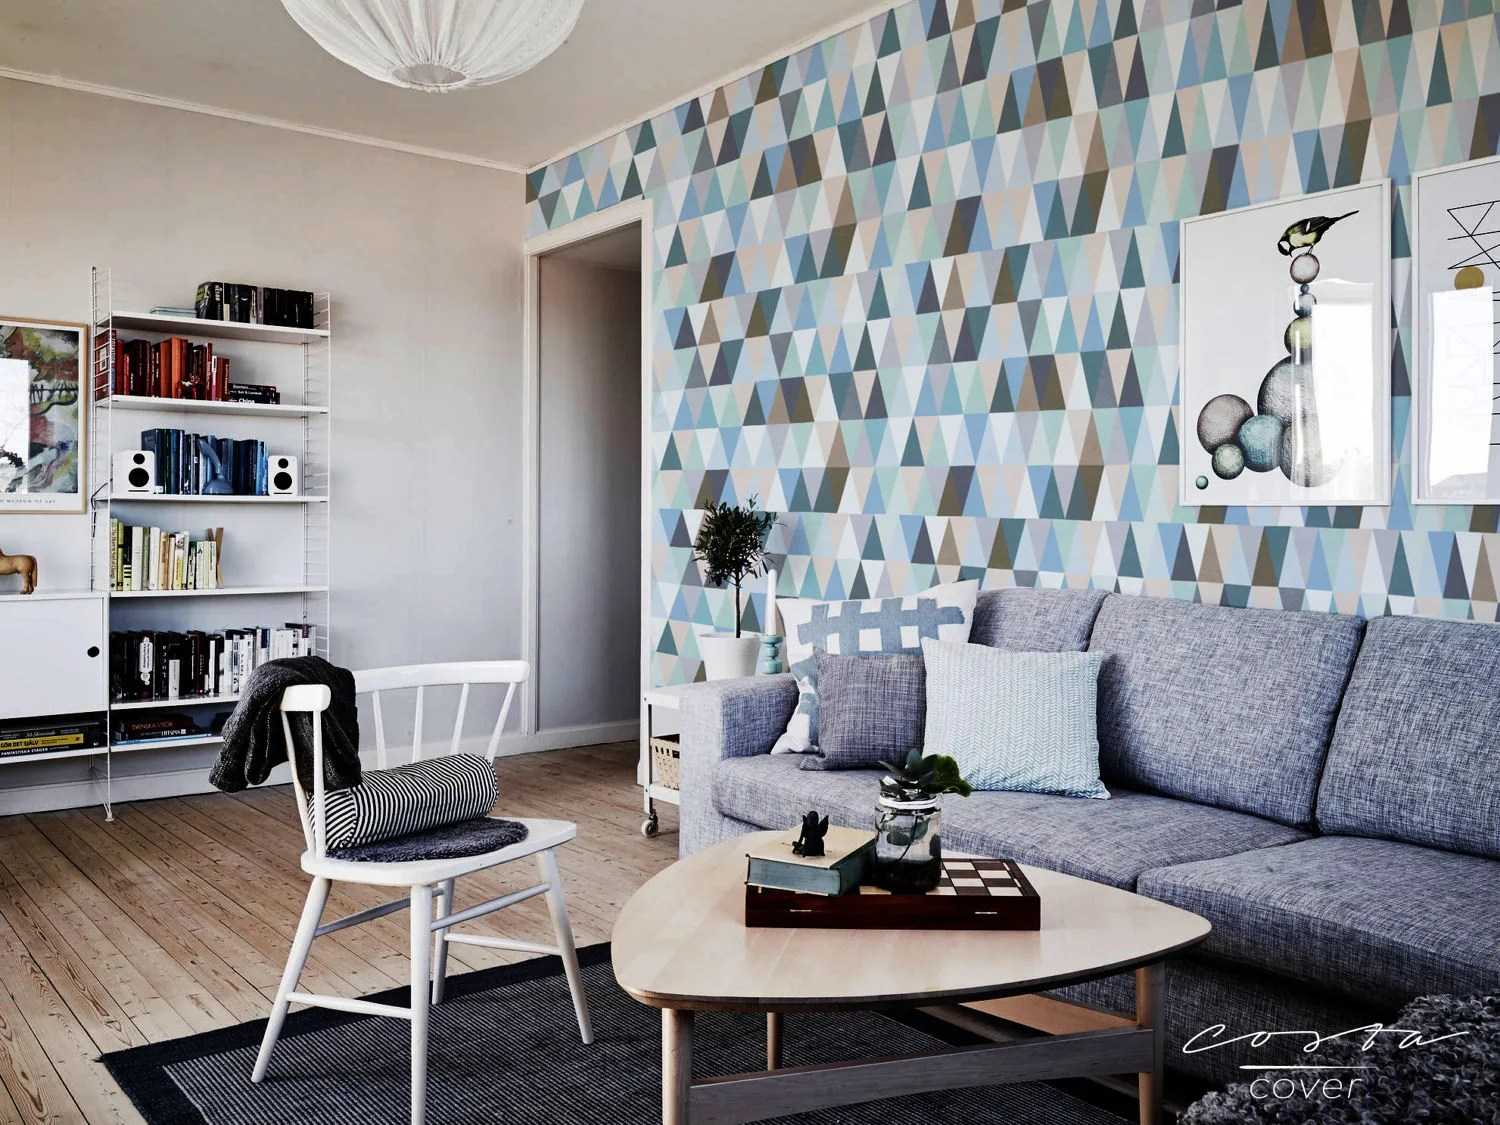 Wallpaper removable for apartment wall hanging Blue Triangle